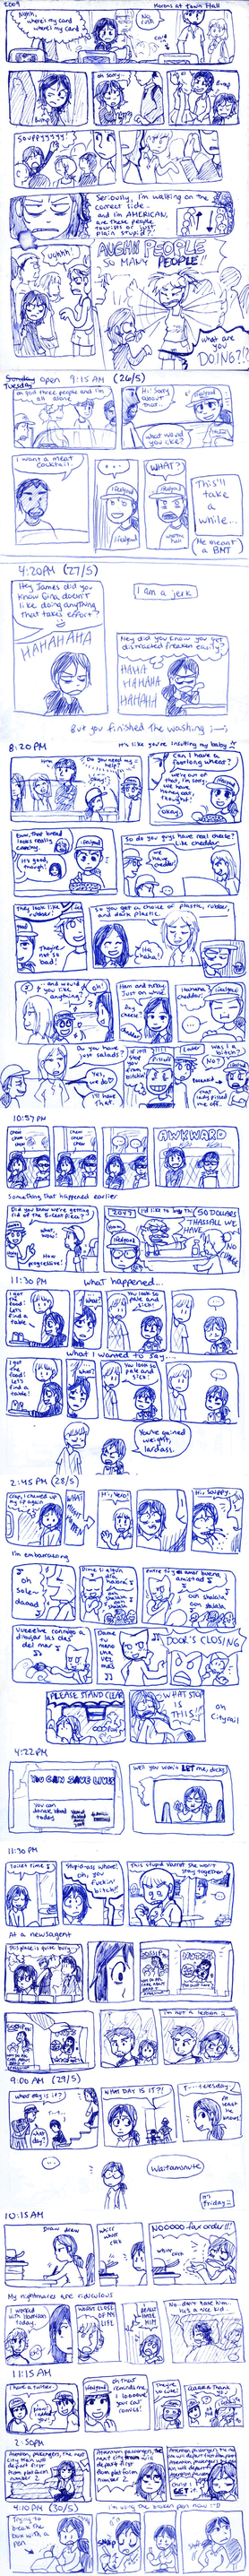 2009 Diary Comic - May. by taeshilh